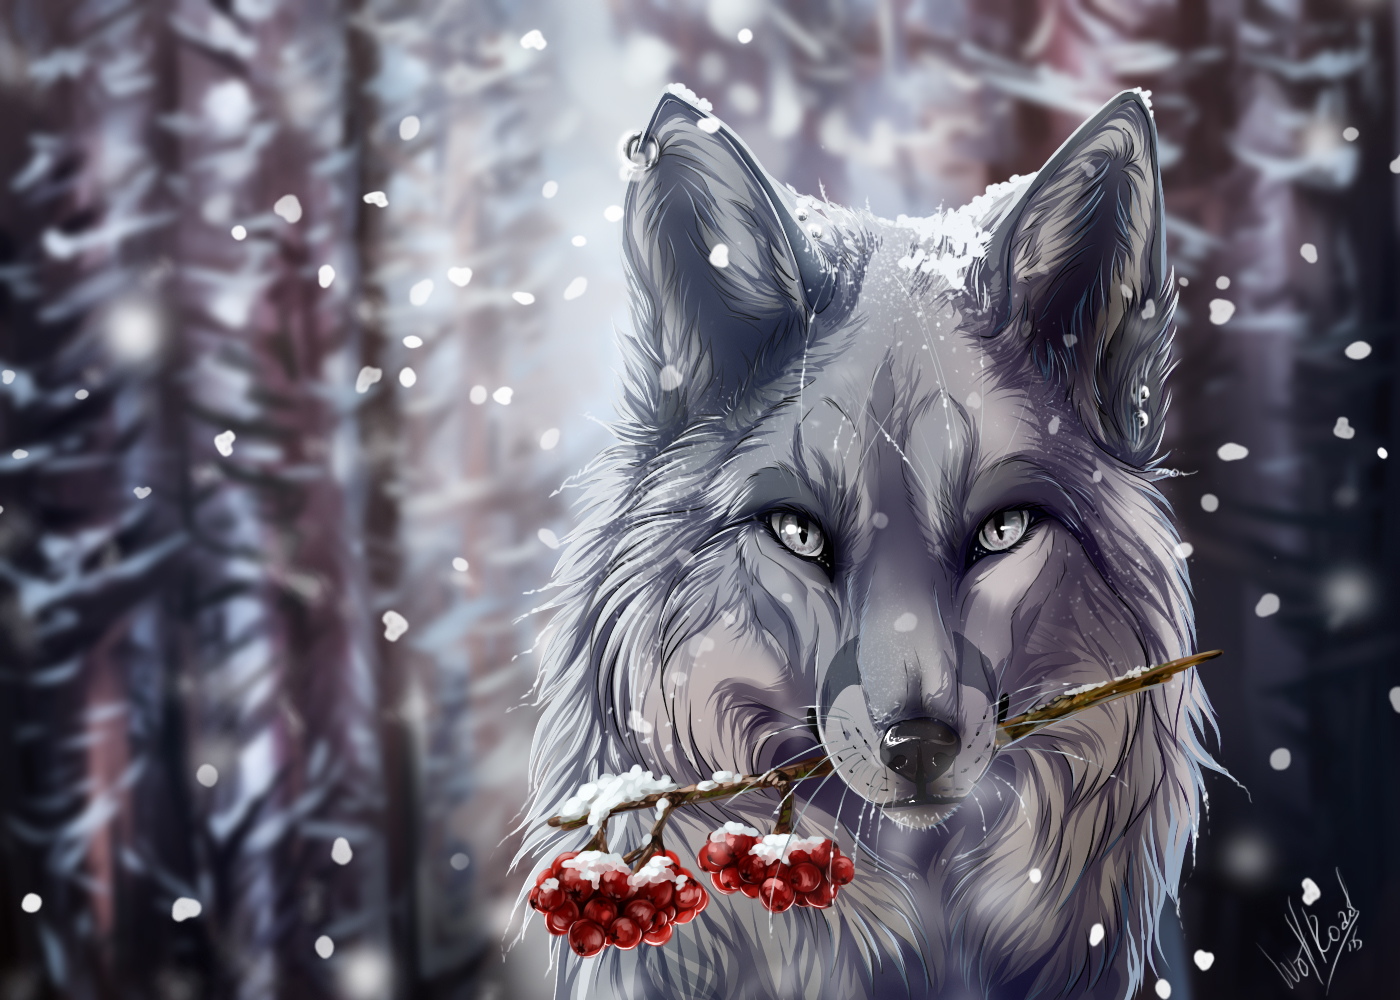 re looking for the best anime wolf wallpaper then wallpapertag is the place to be 24+  Wolf